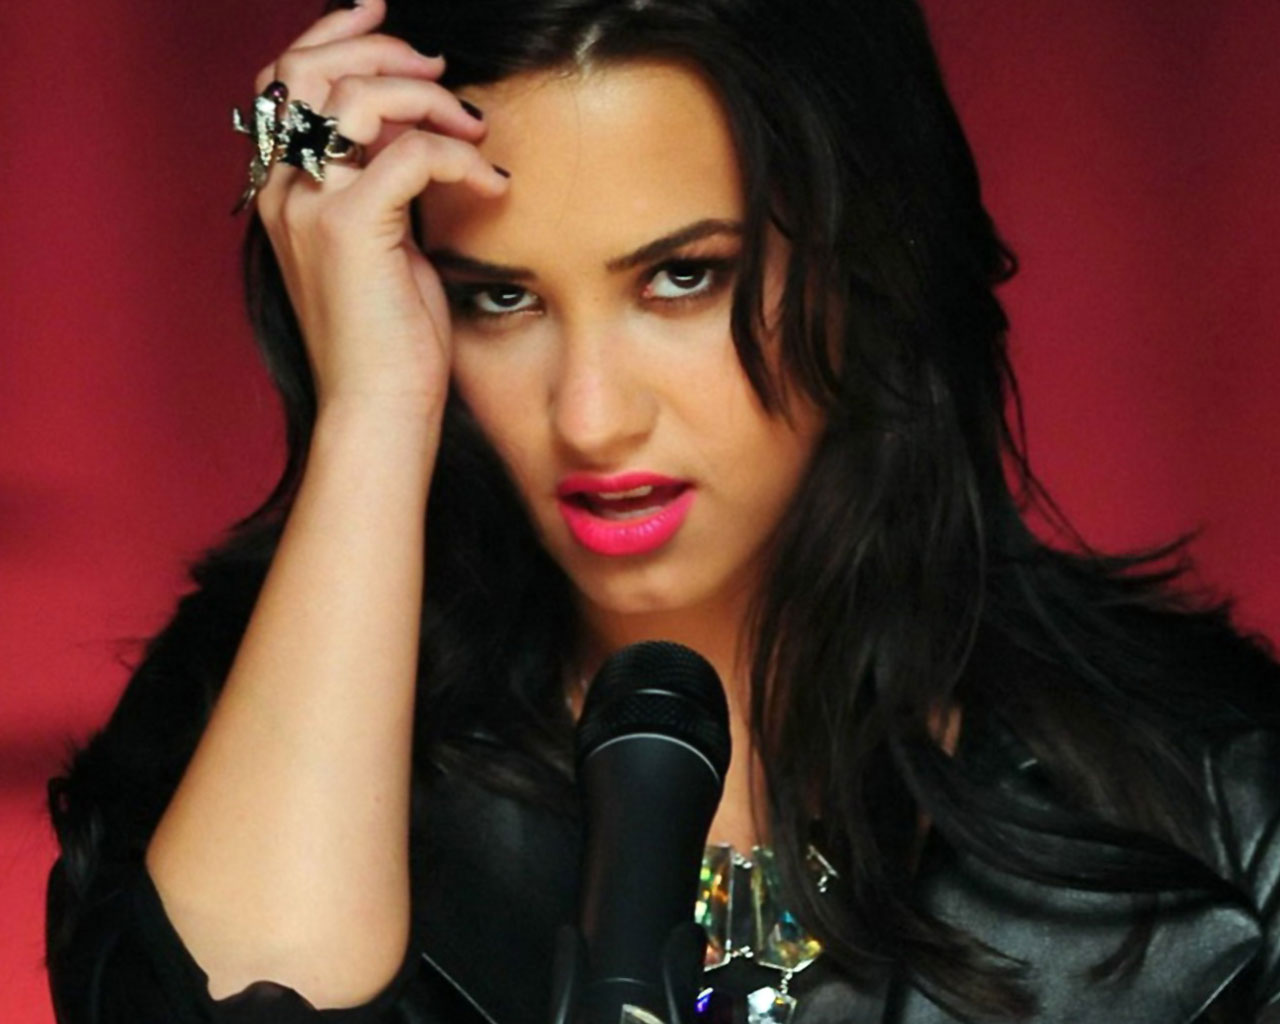 demi lovato hot wallpapers | wallpapers hd